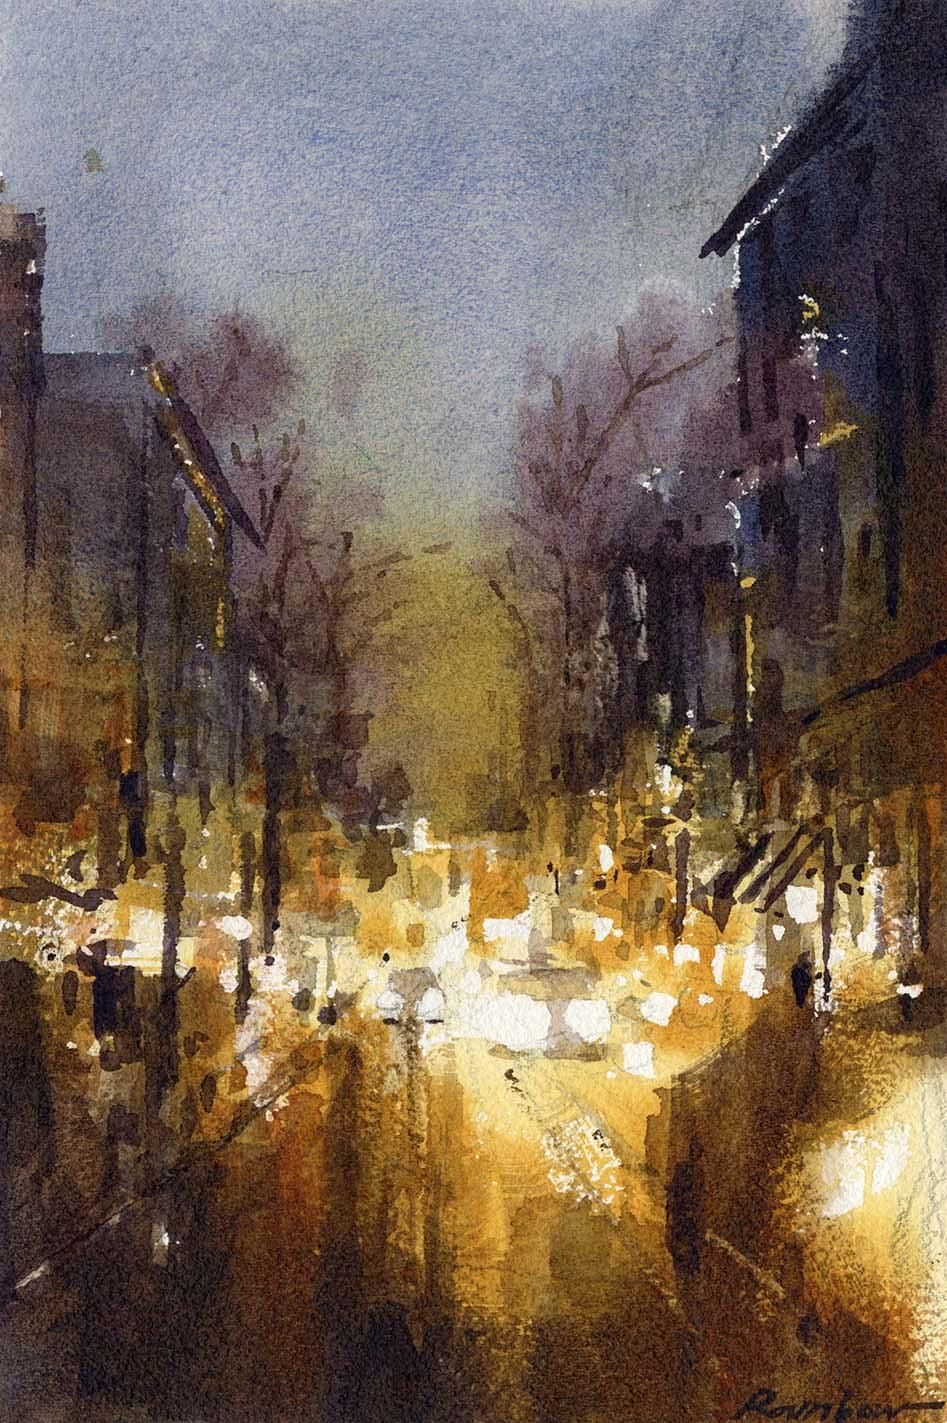 Painting Cityscapes in Watercolor: From Conception to Final Painting - image 1 - student project